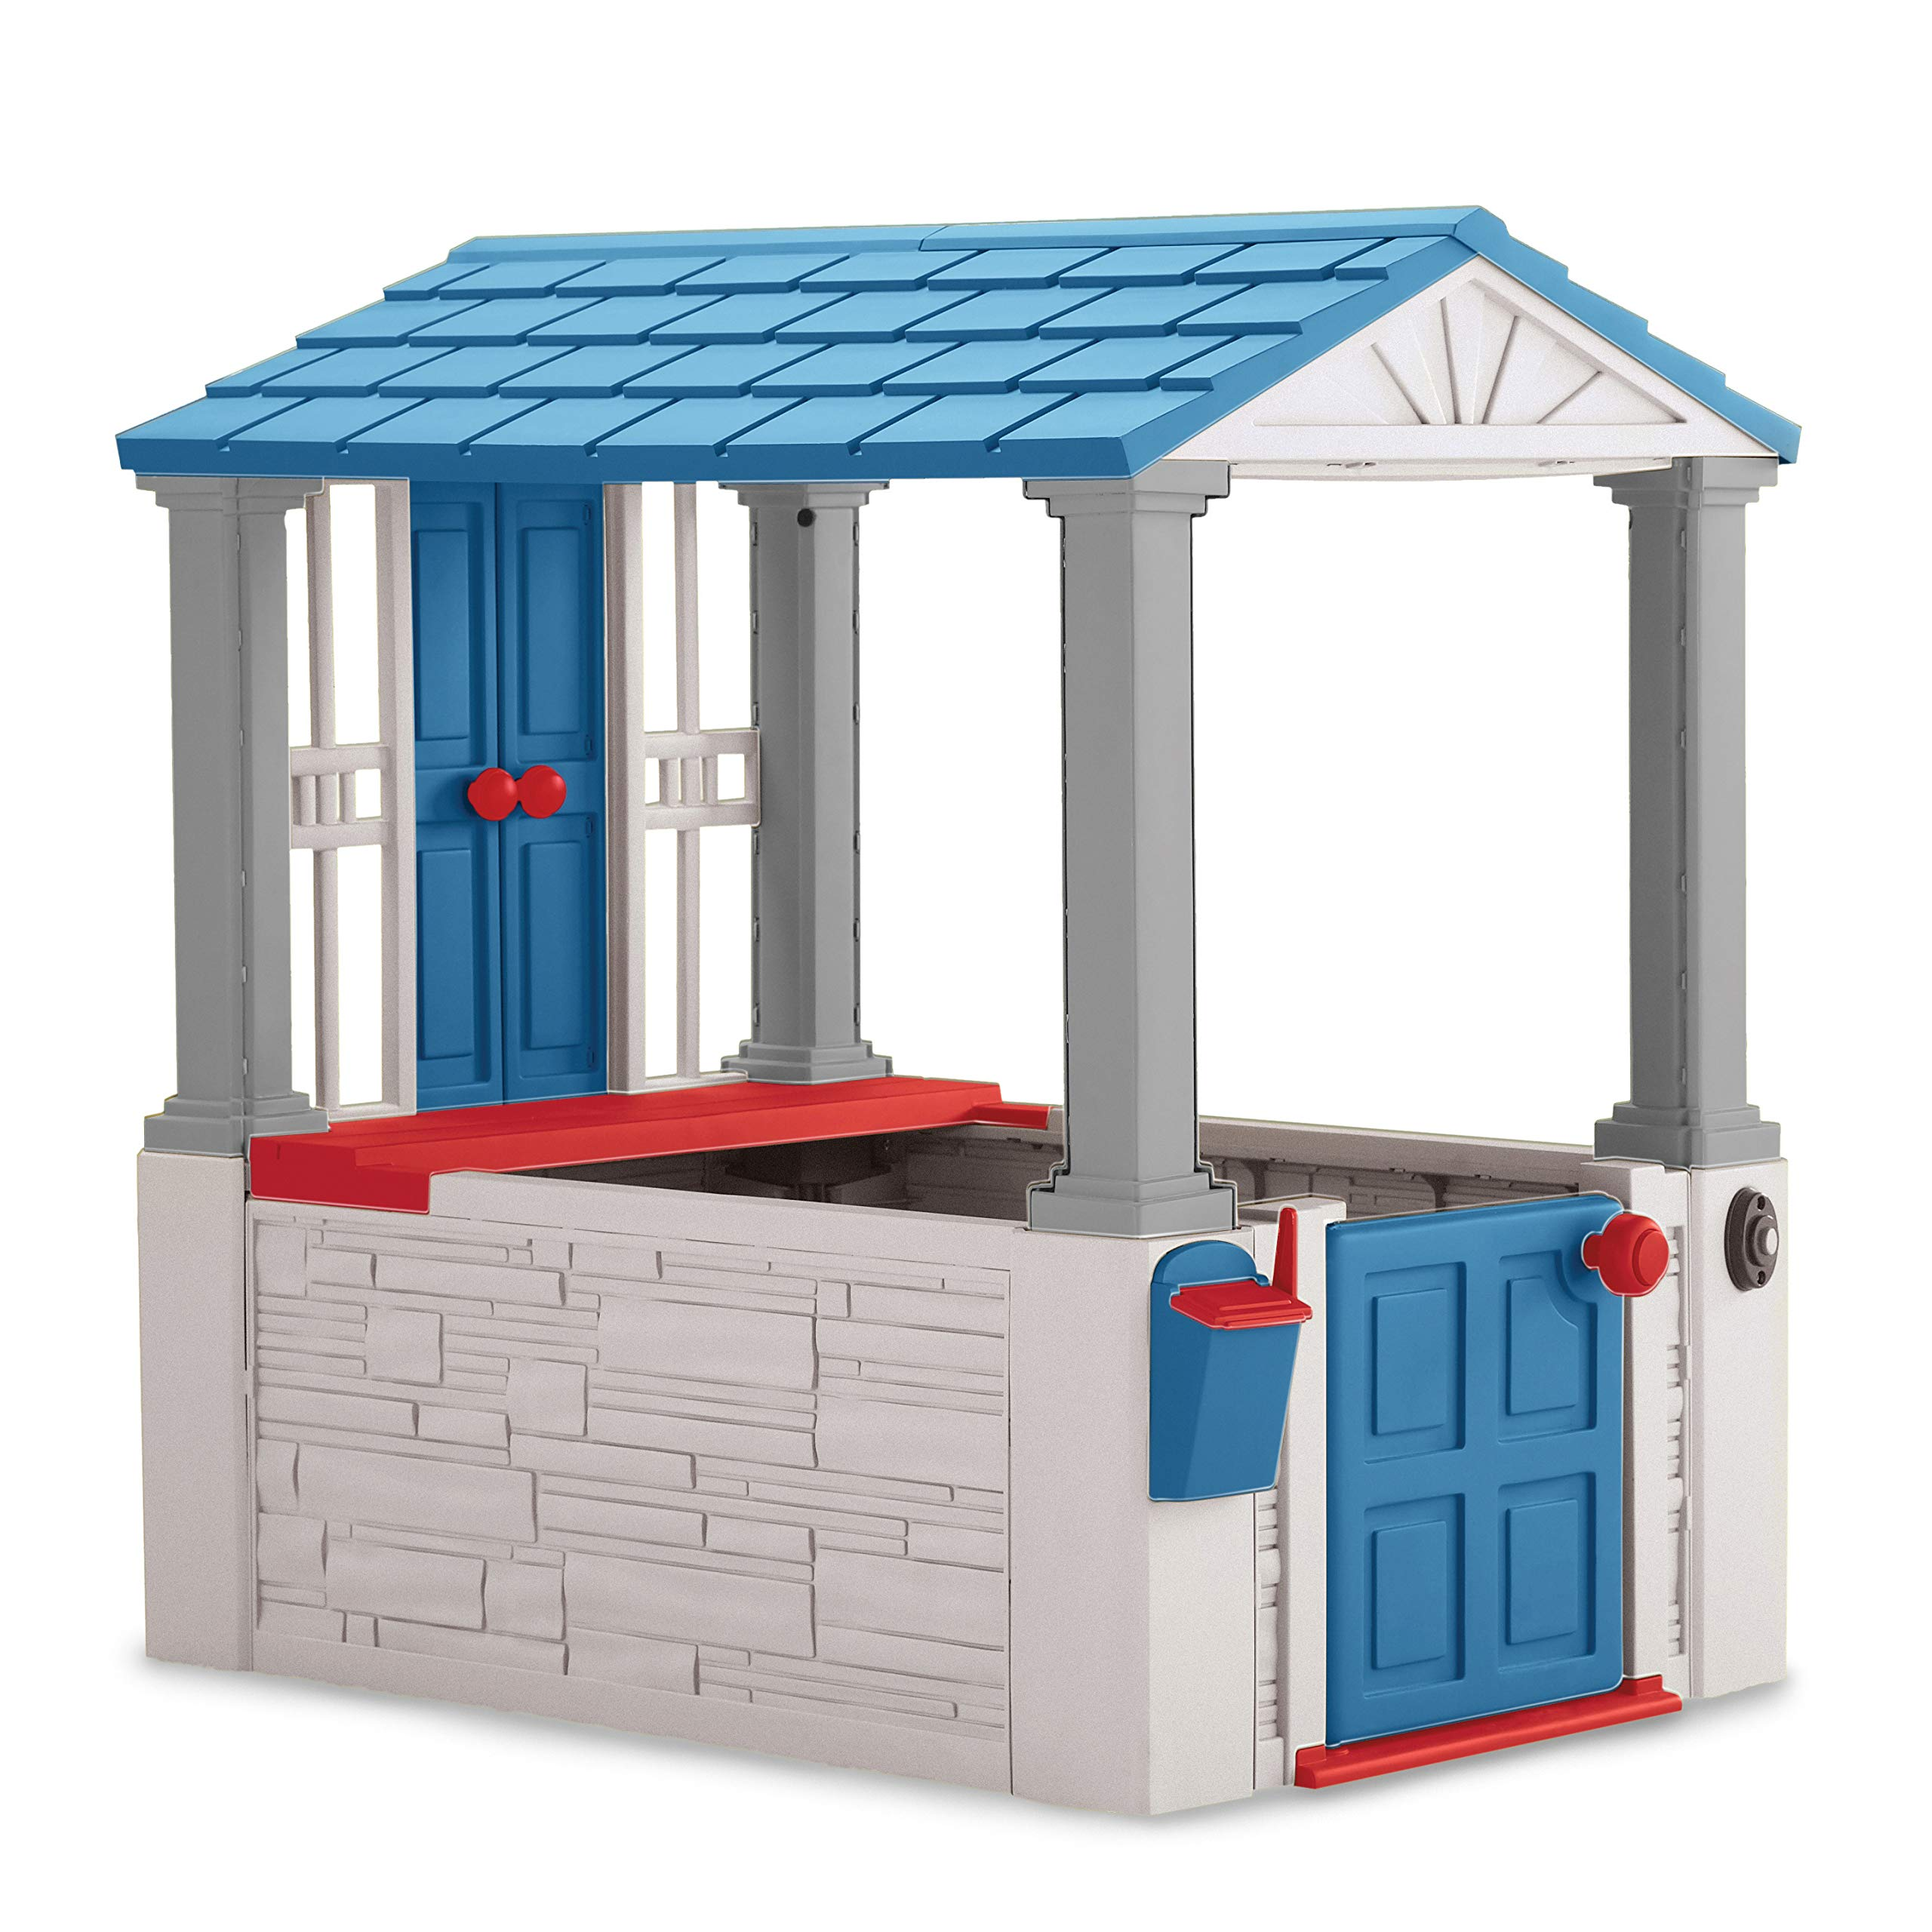 American Plastic Toys My First Playhouse by American Plastic Toys